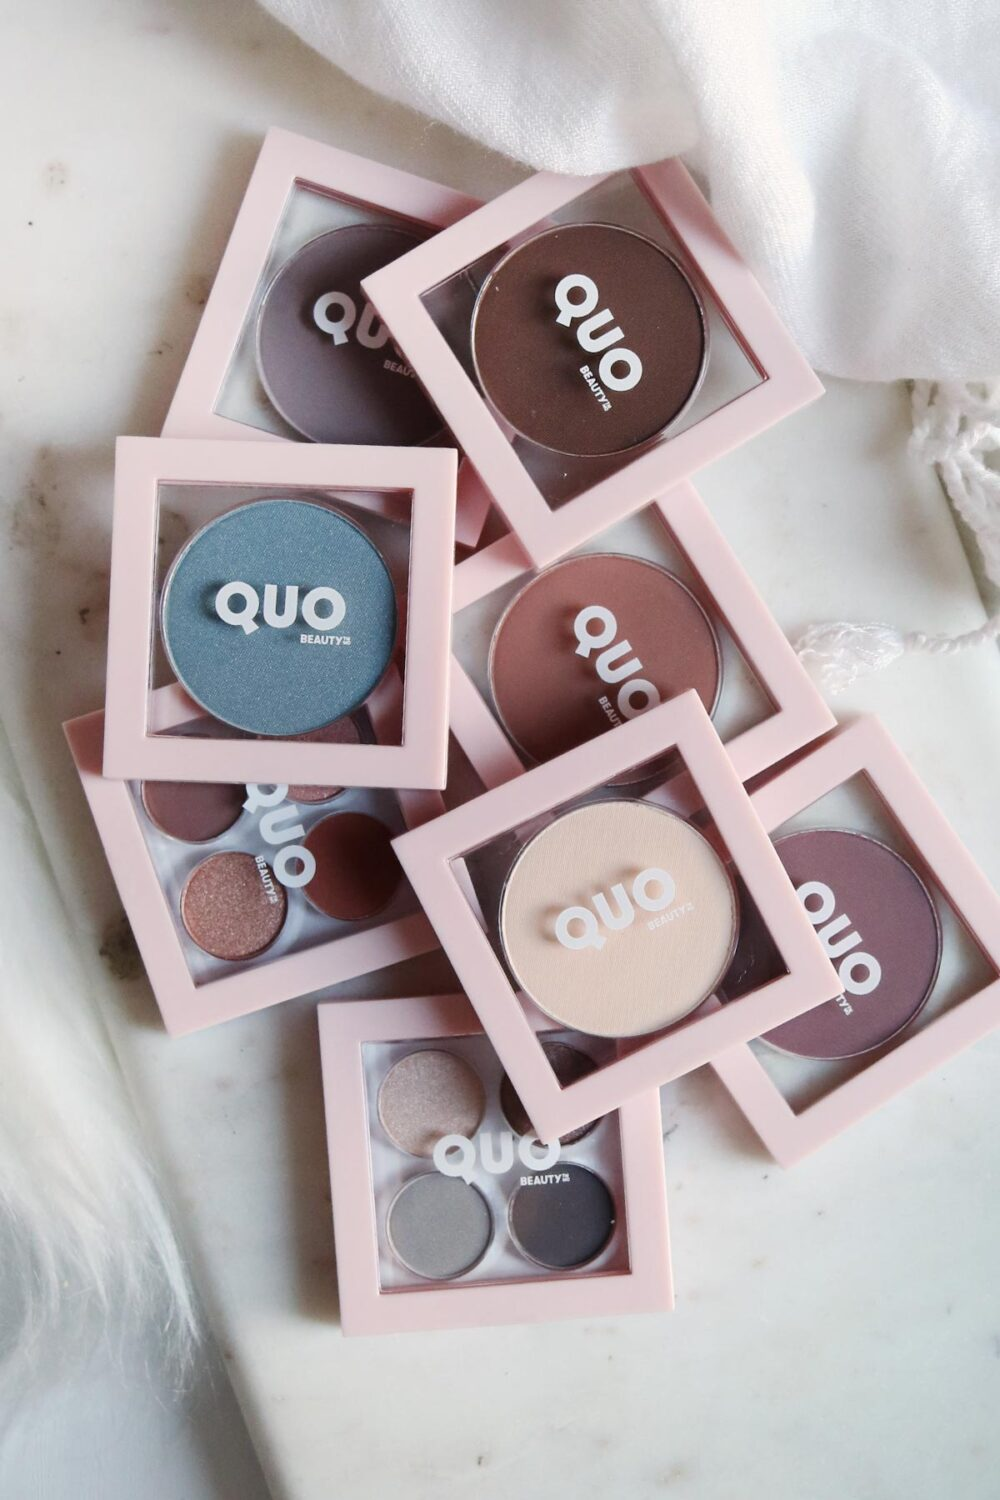 Quo Beauty Wake Up Eyeshadow Review